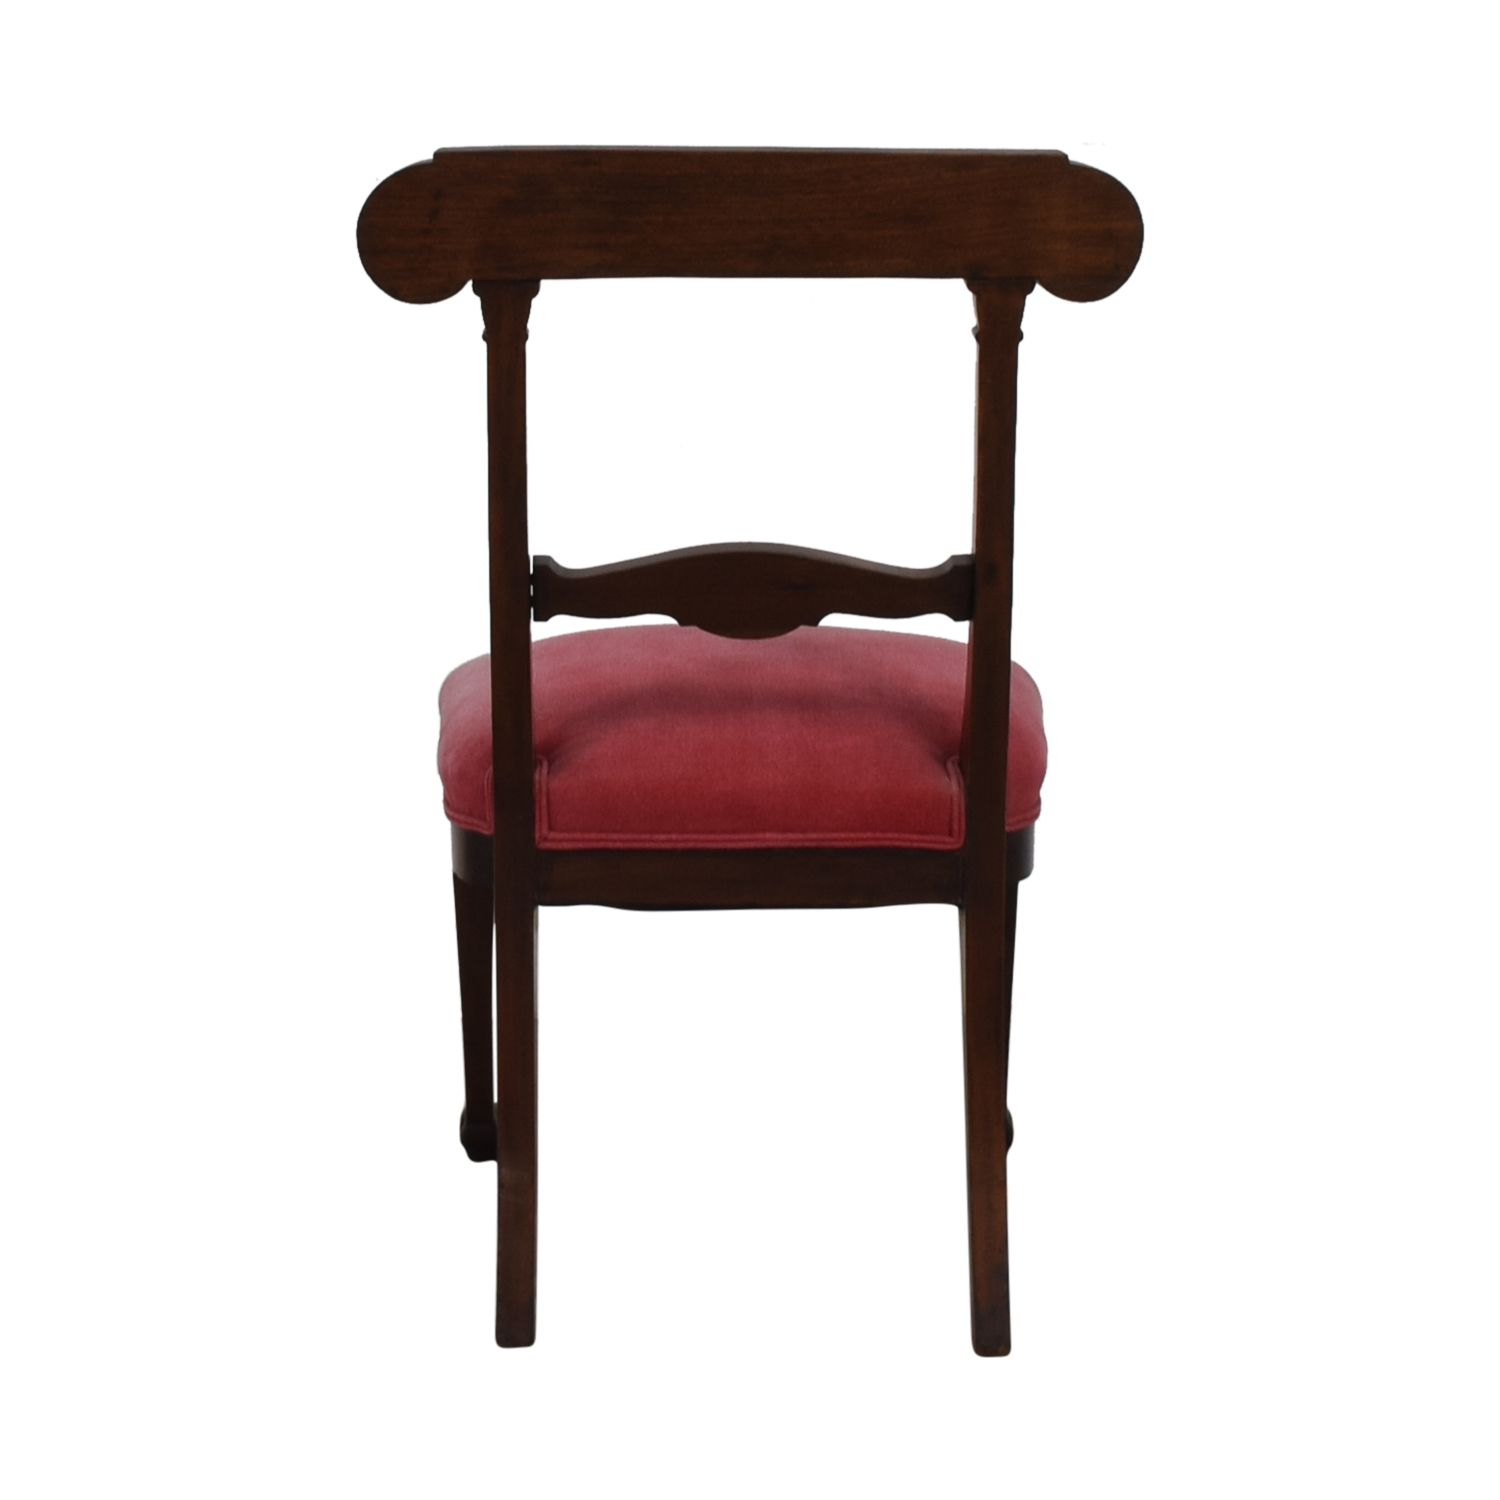 Antique Wood and Red Upholstered Accent Chair sale